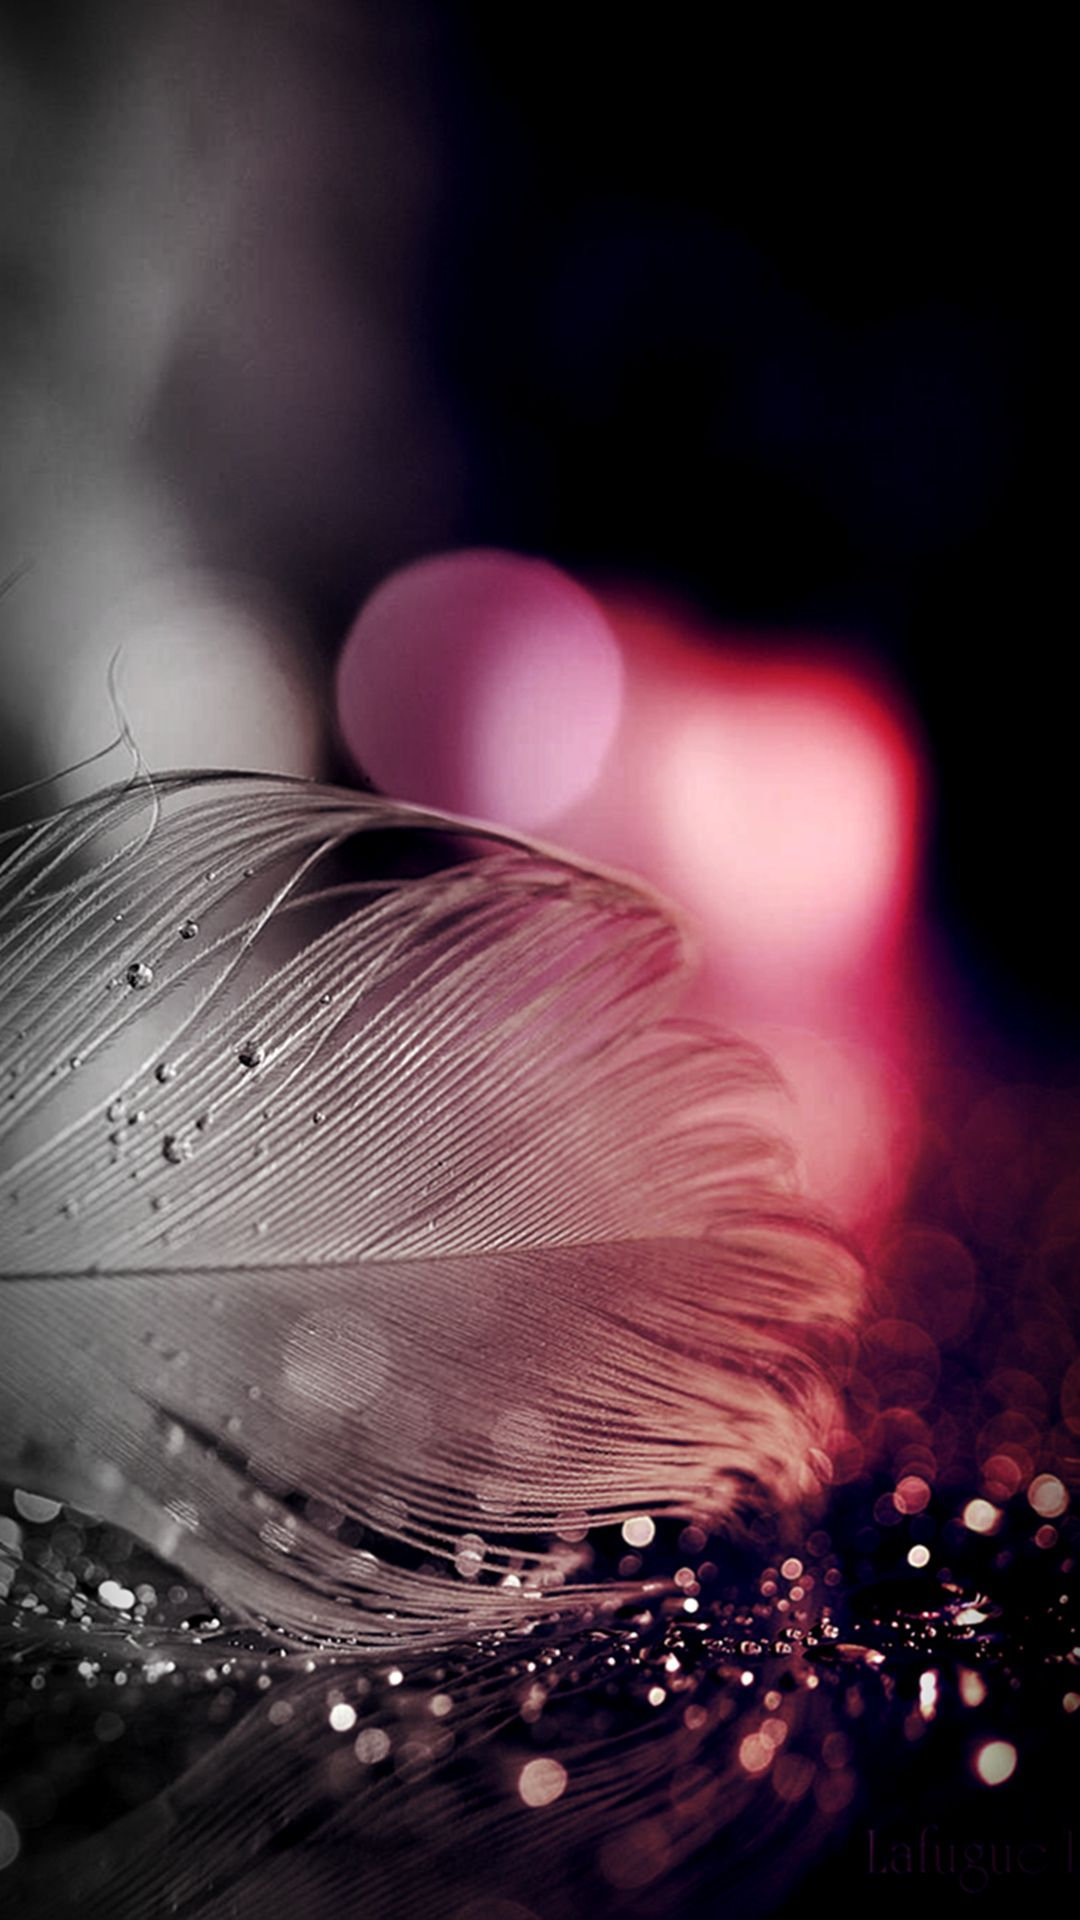 Http Www Vactualpapers Com Gallery Sparkling Feather Hd Mobile Wallpaper Feather Wallpaper Sparkle Wallpaper Mobile Wallpaper